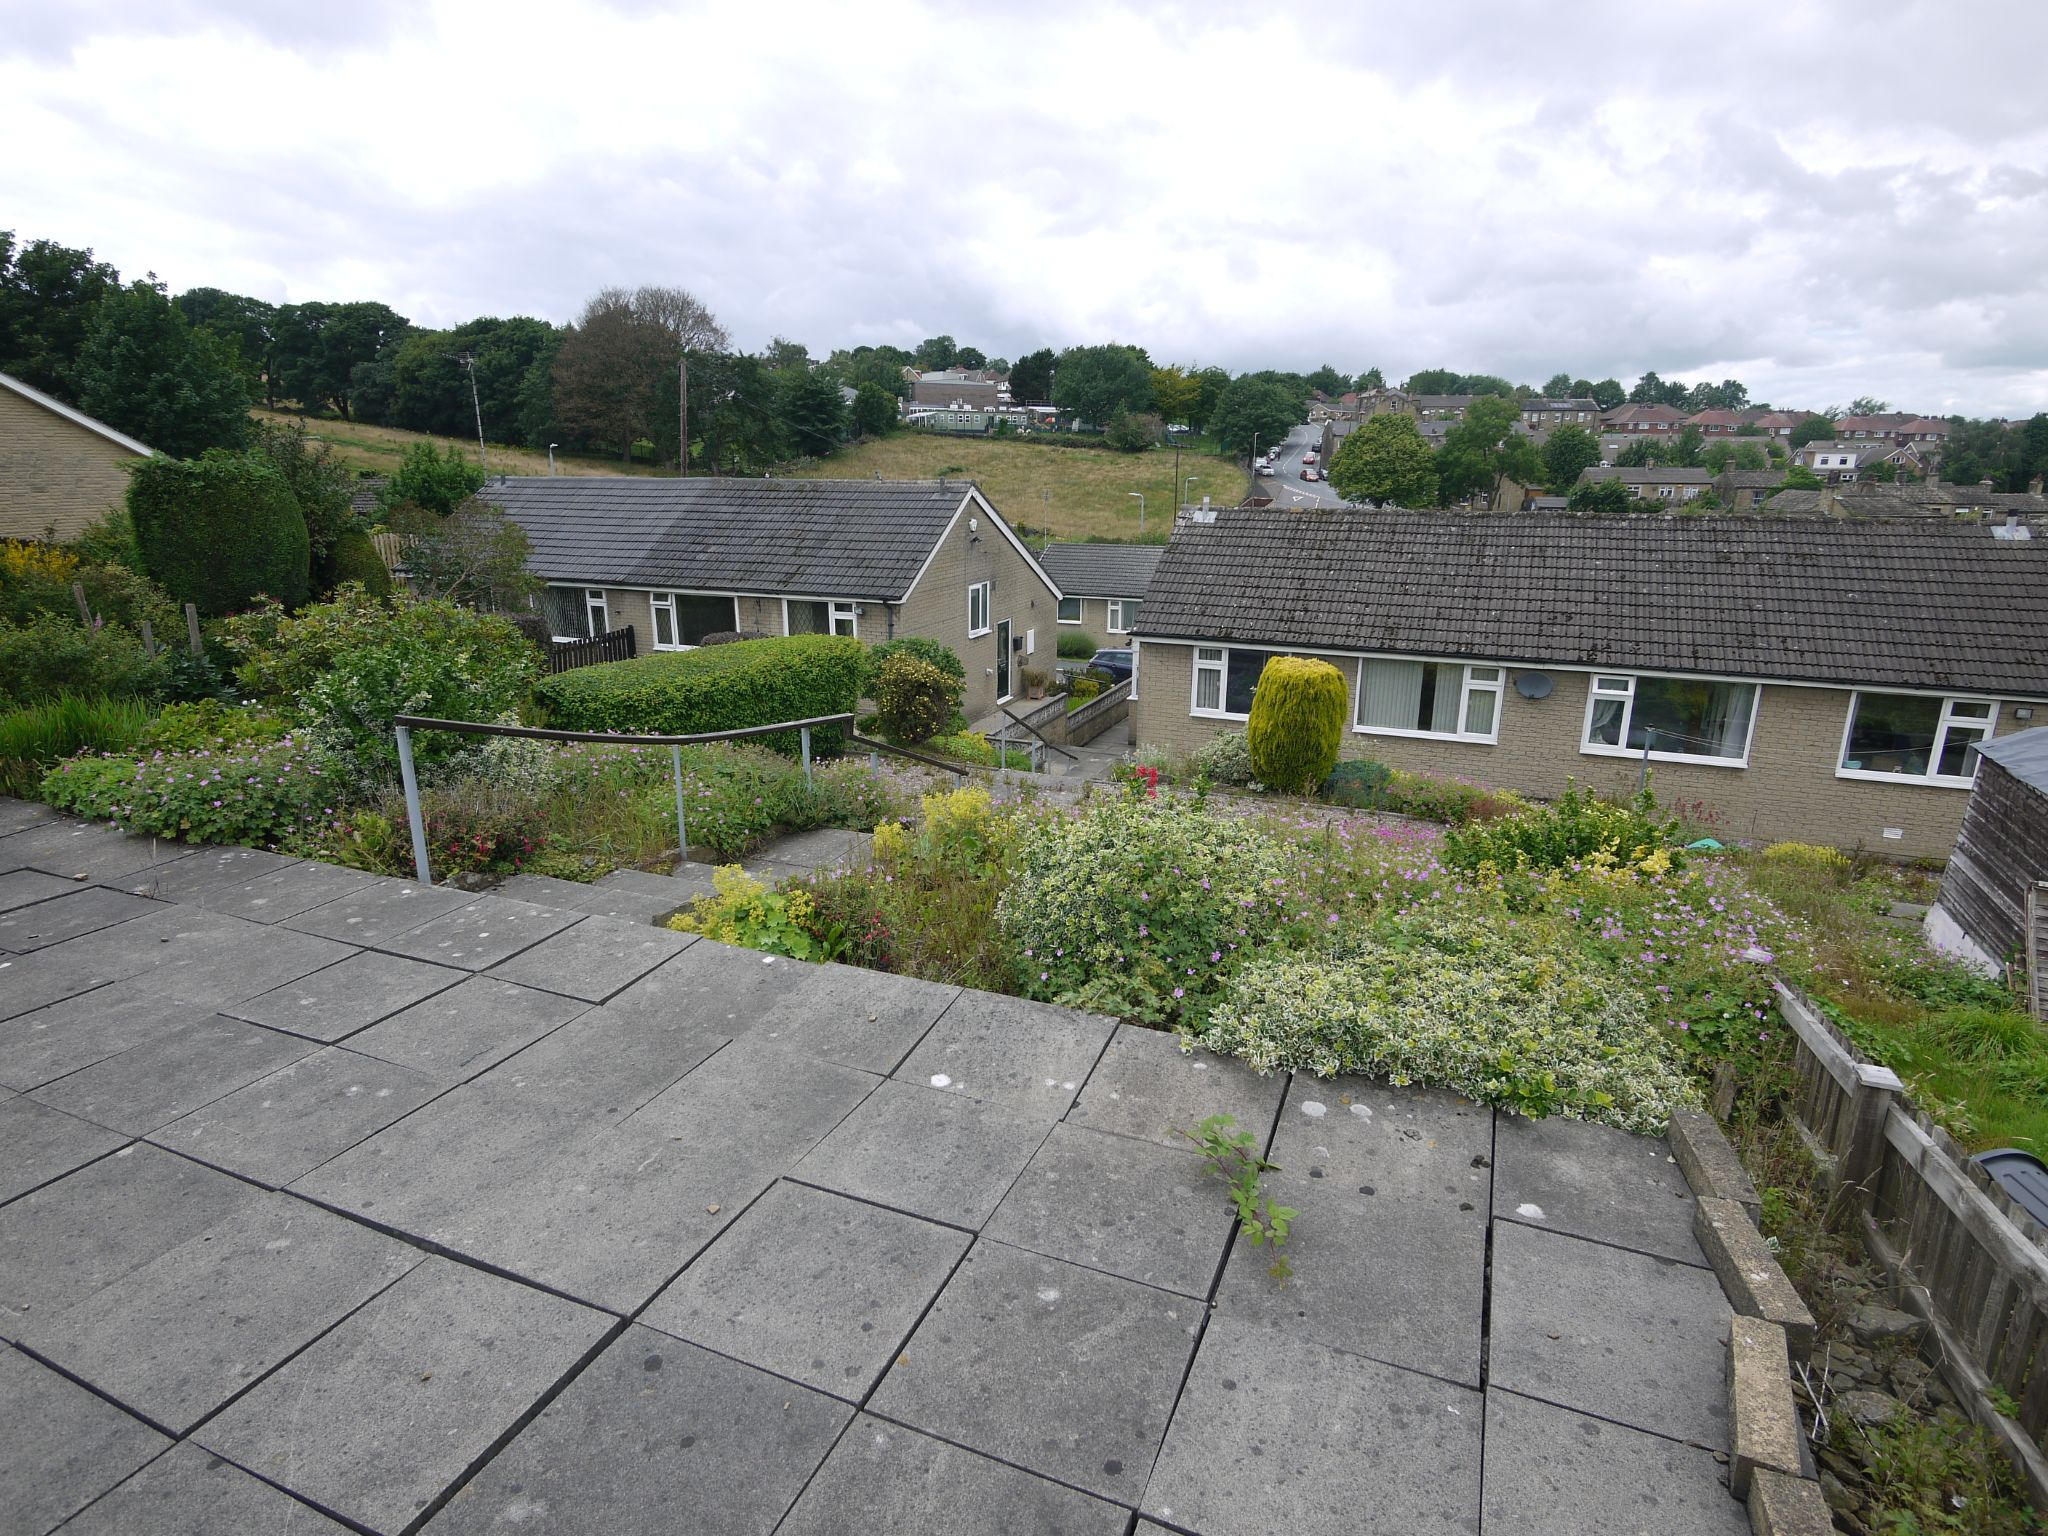 2 bedroom semi-detached bungalow SSTC in Brighouse - Rear and view.